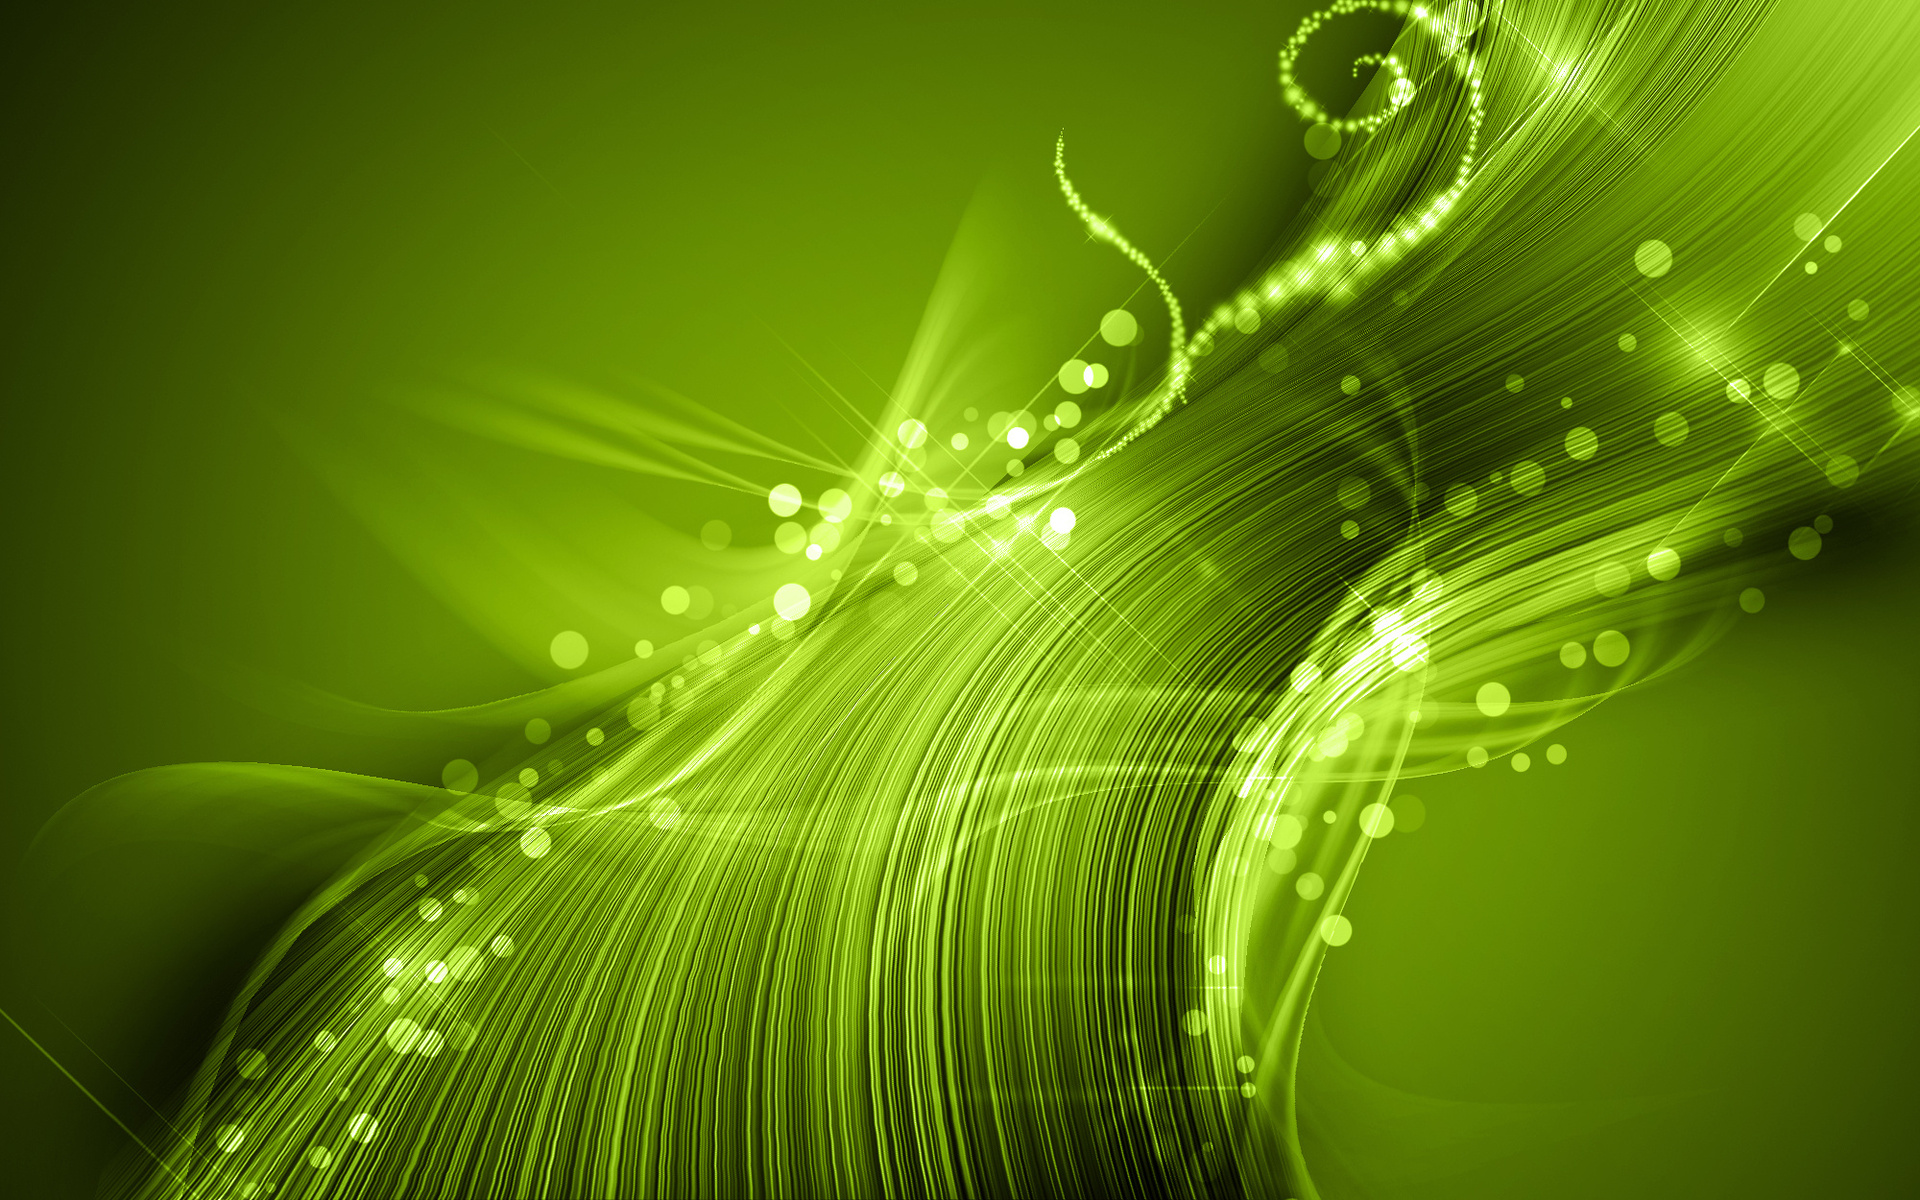 Cute green abstraction